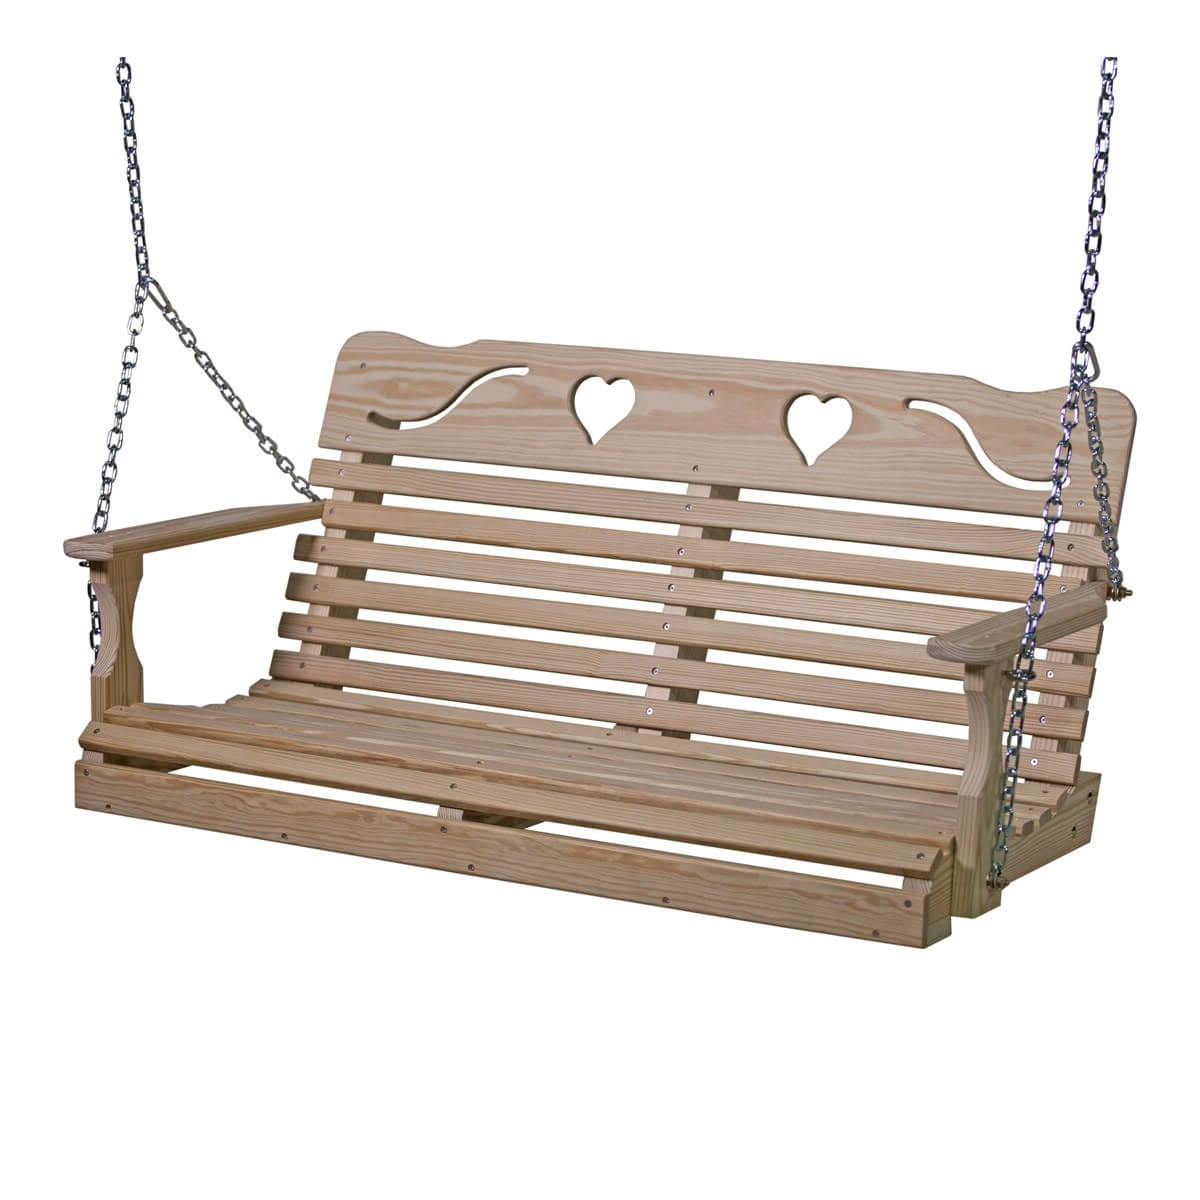 Widely Used Plain Porch Swings Throughout Swings · Hostetler's Furniture (View 28 of 30)